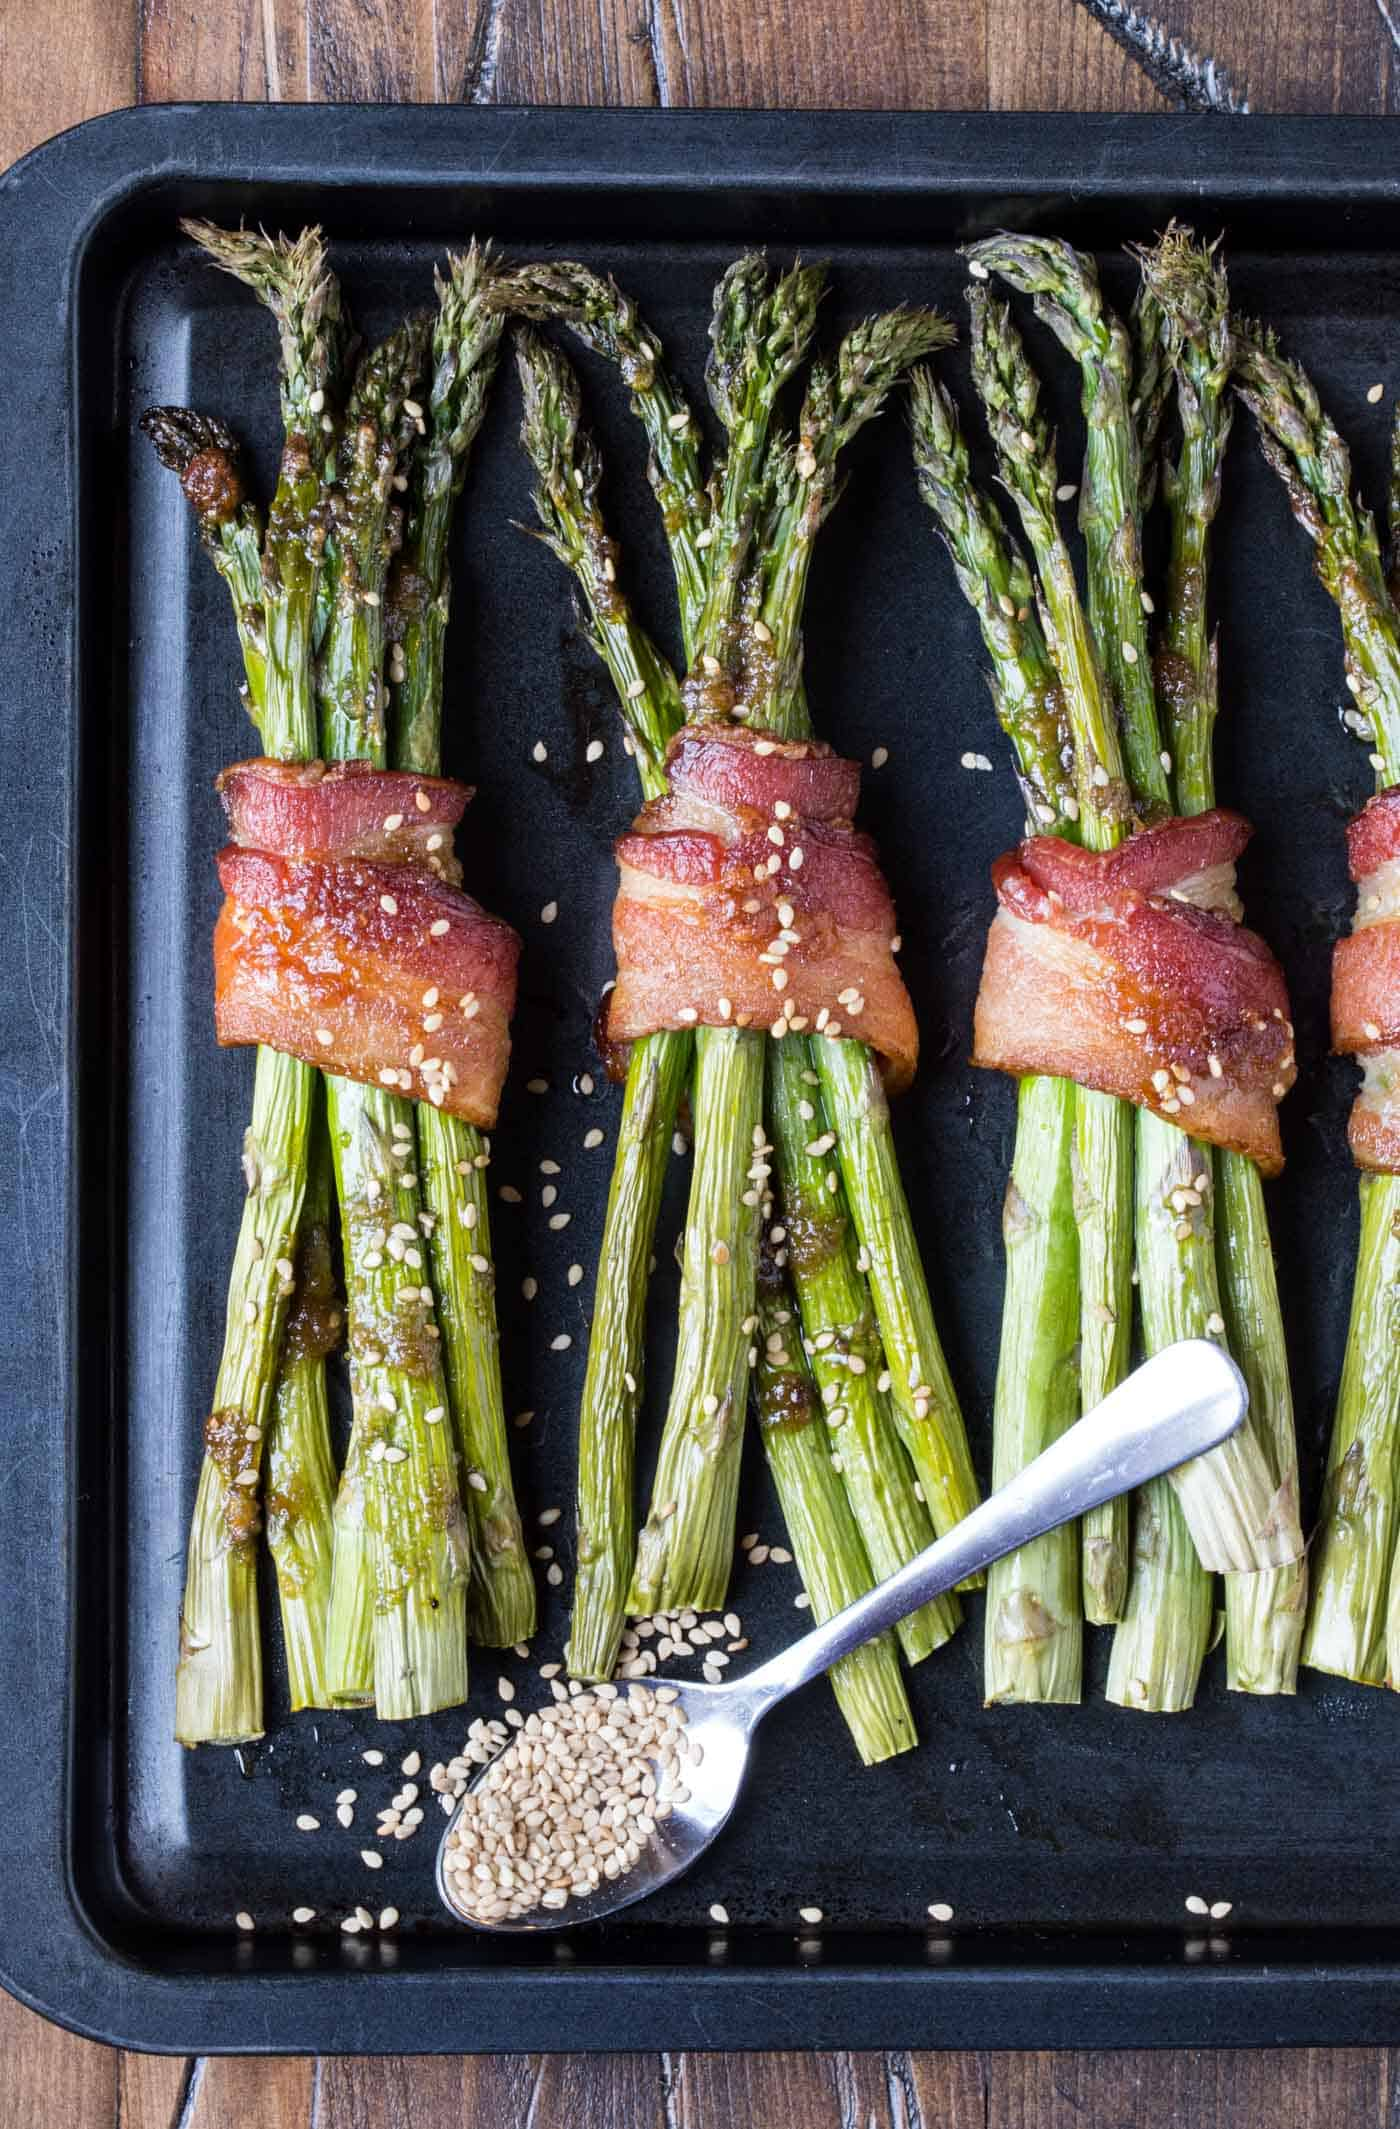 Spring side dishes don't get much easier than these tasty Bacon Asparagus Bundles!